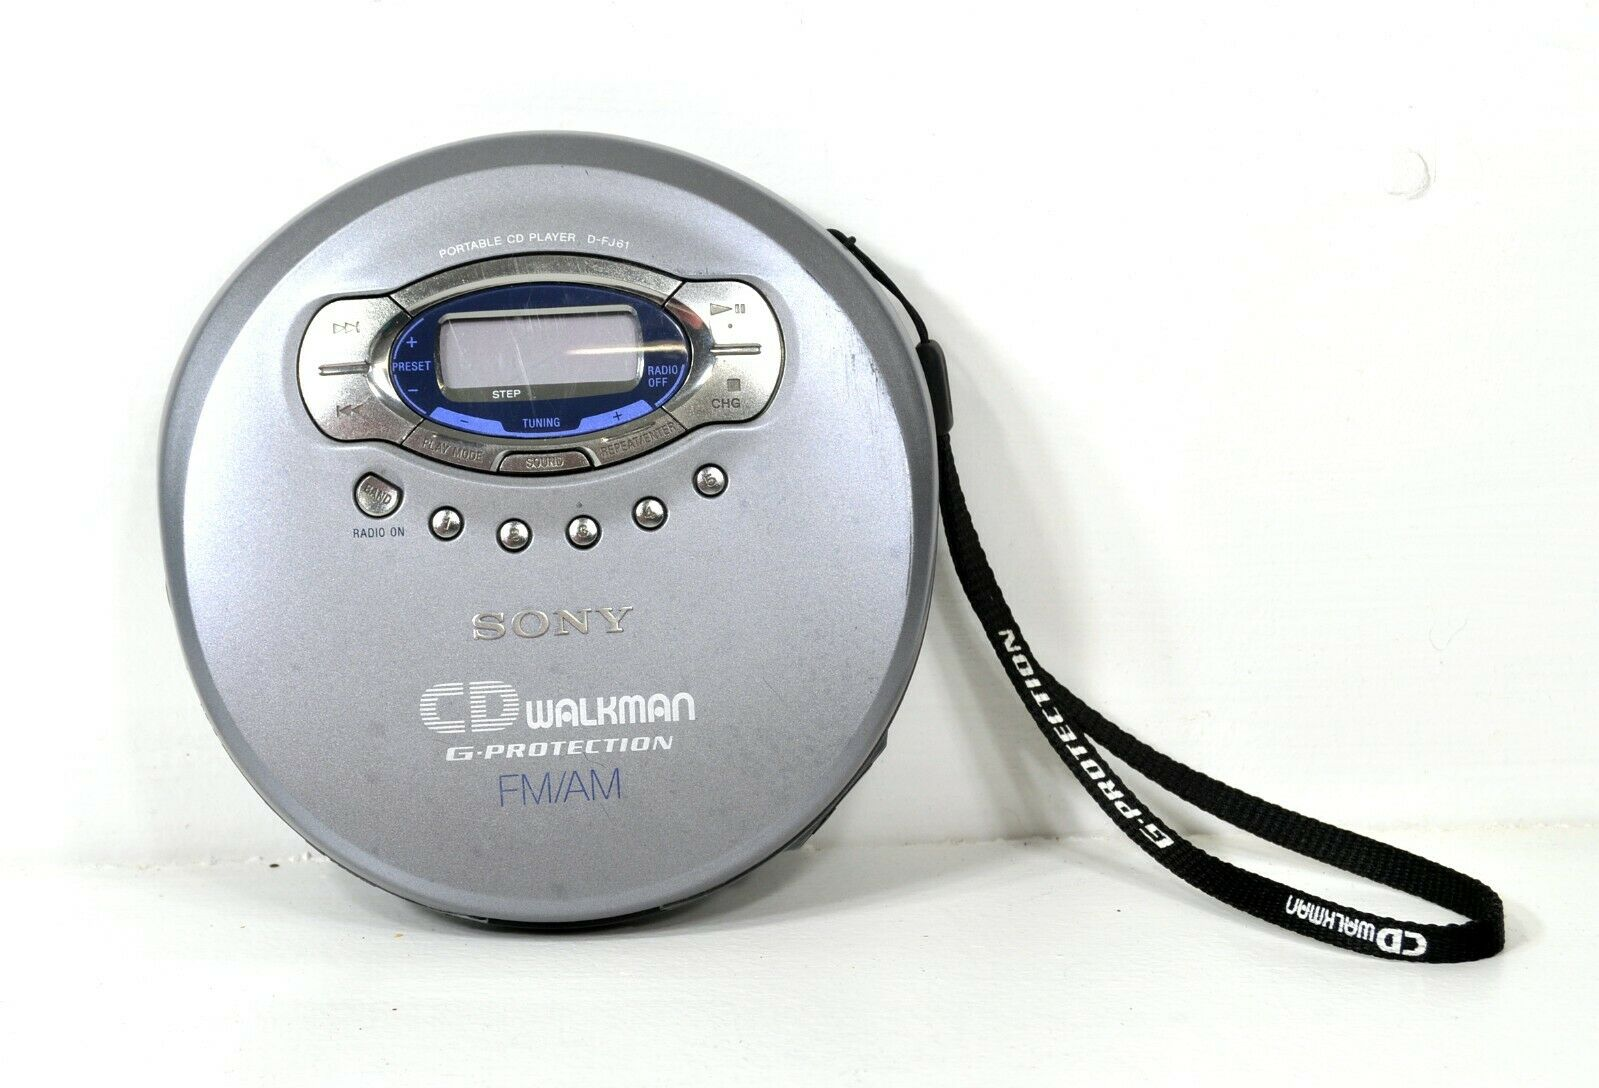 Sony CD Walkman FM AM Radio with G Protection (Tested Works As is)